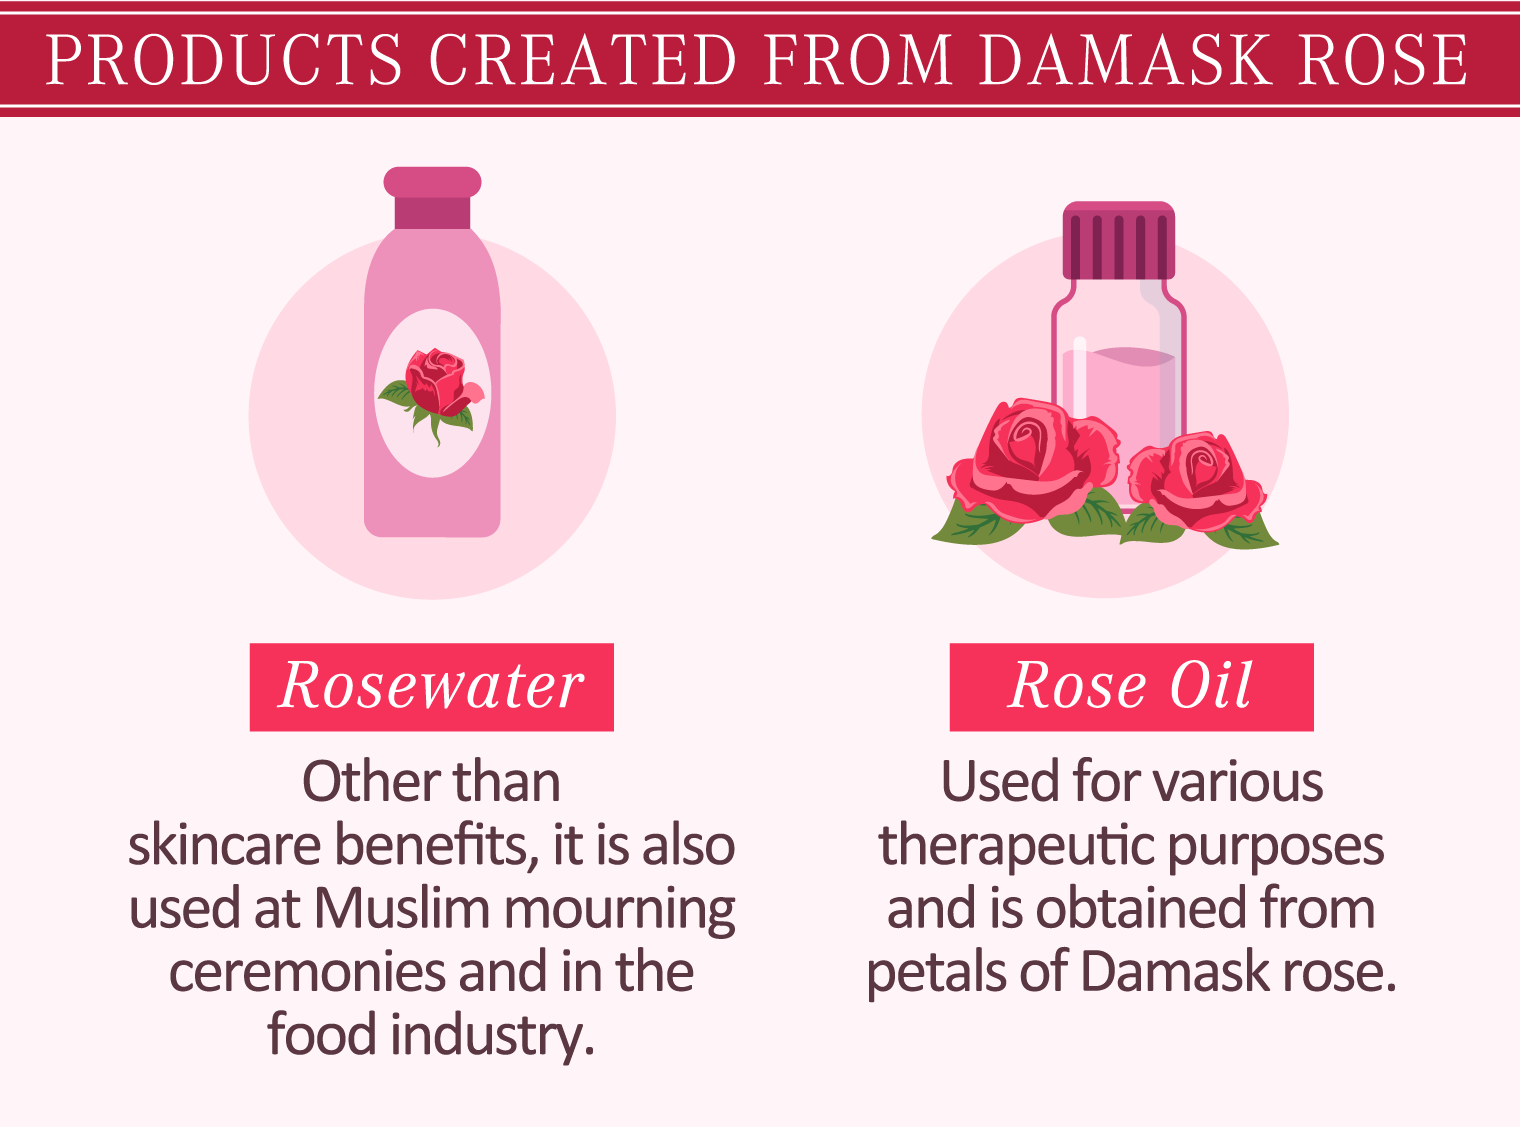 illustration of products created from damask rose